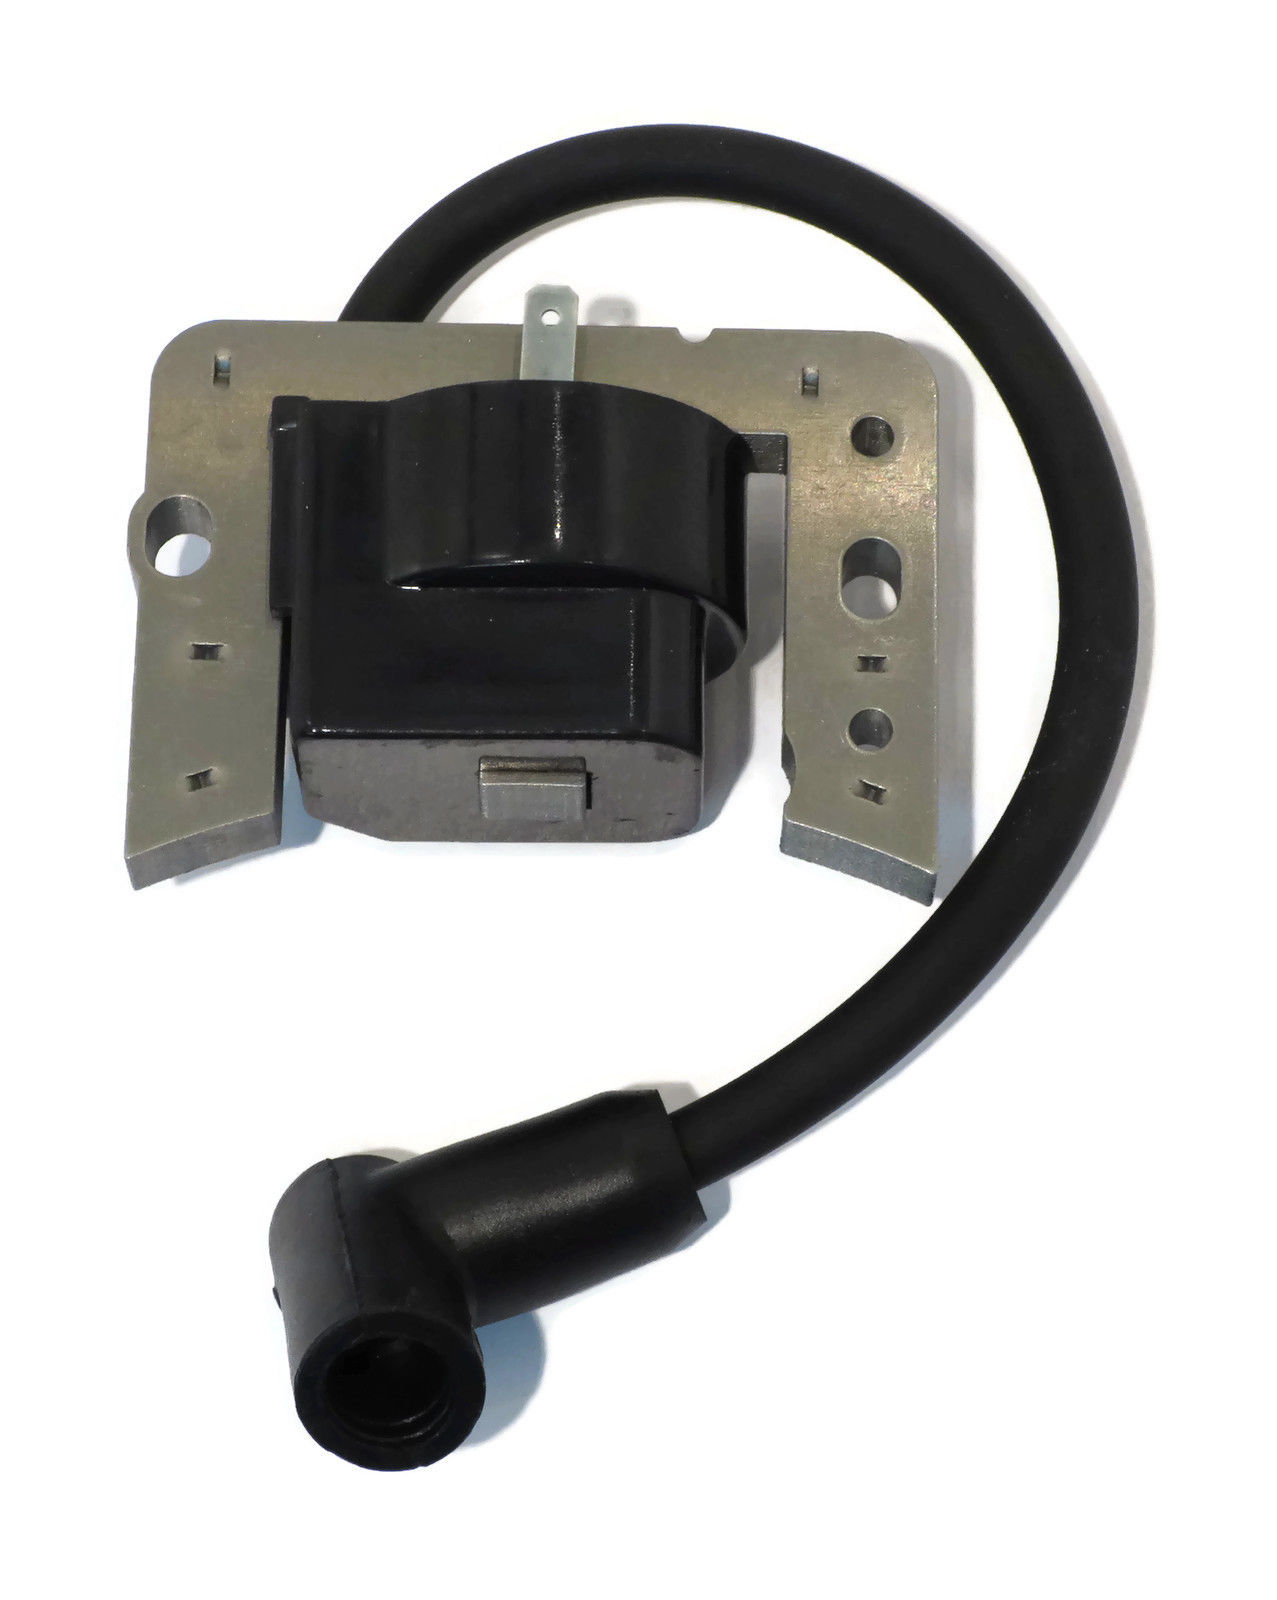 IGNITION COIL Fits Tecumseh LH195SA LH195SP LV148EA LV148SA LV148XA Lawn Mower by The ROP Shop by The ROP Shop